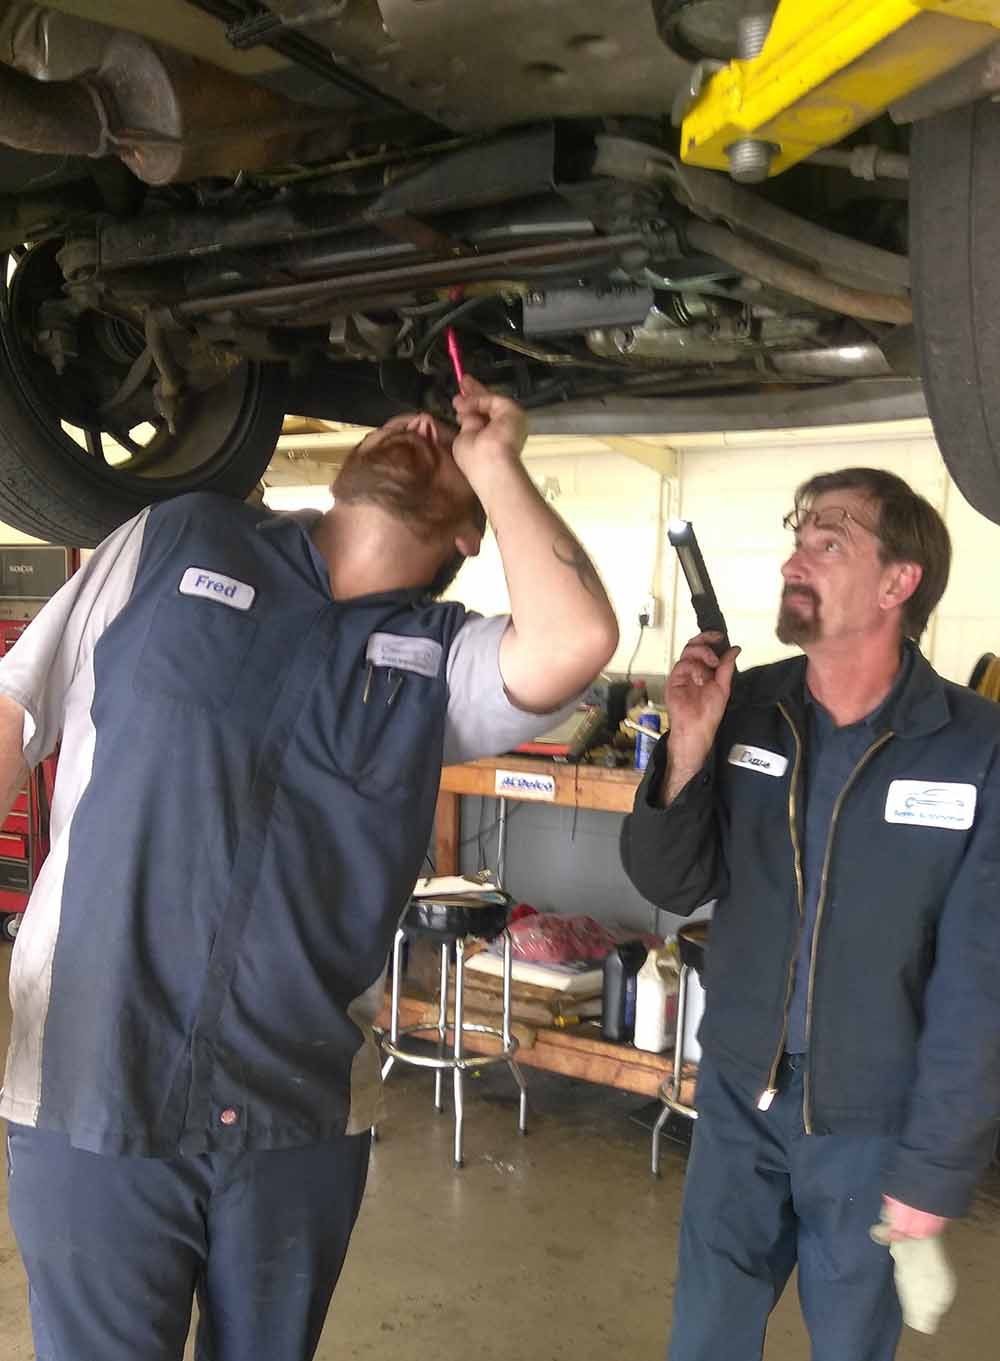 Our experts working on getting a car back on the road